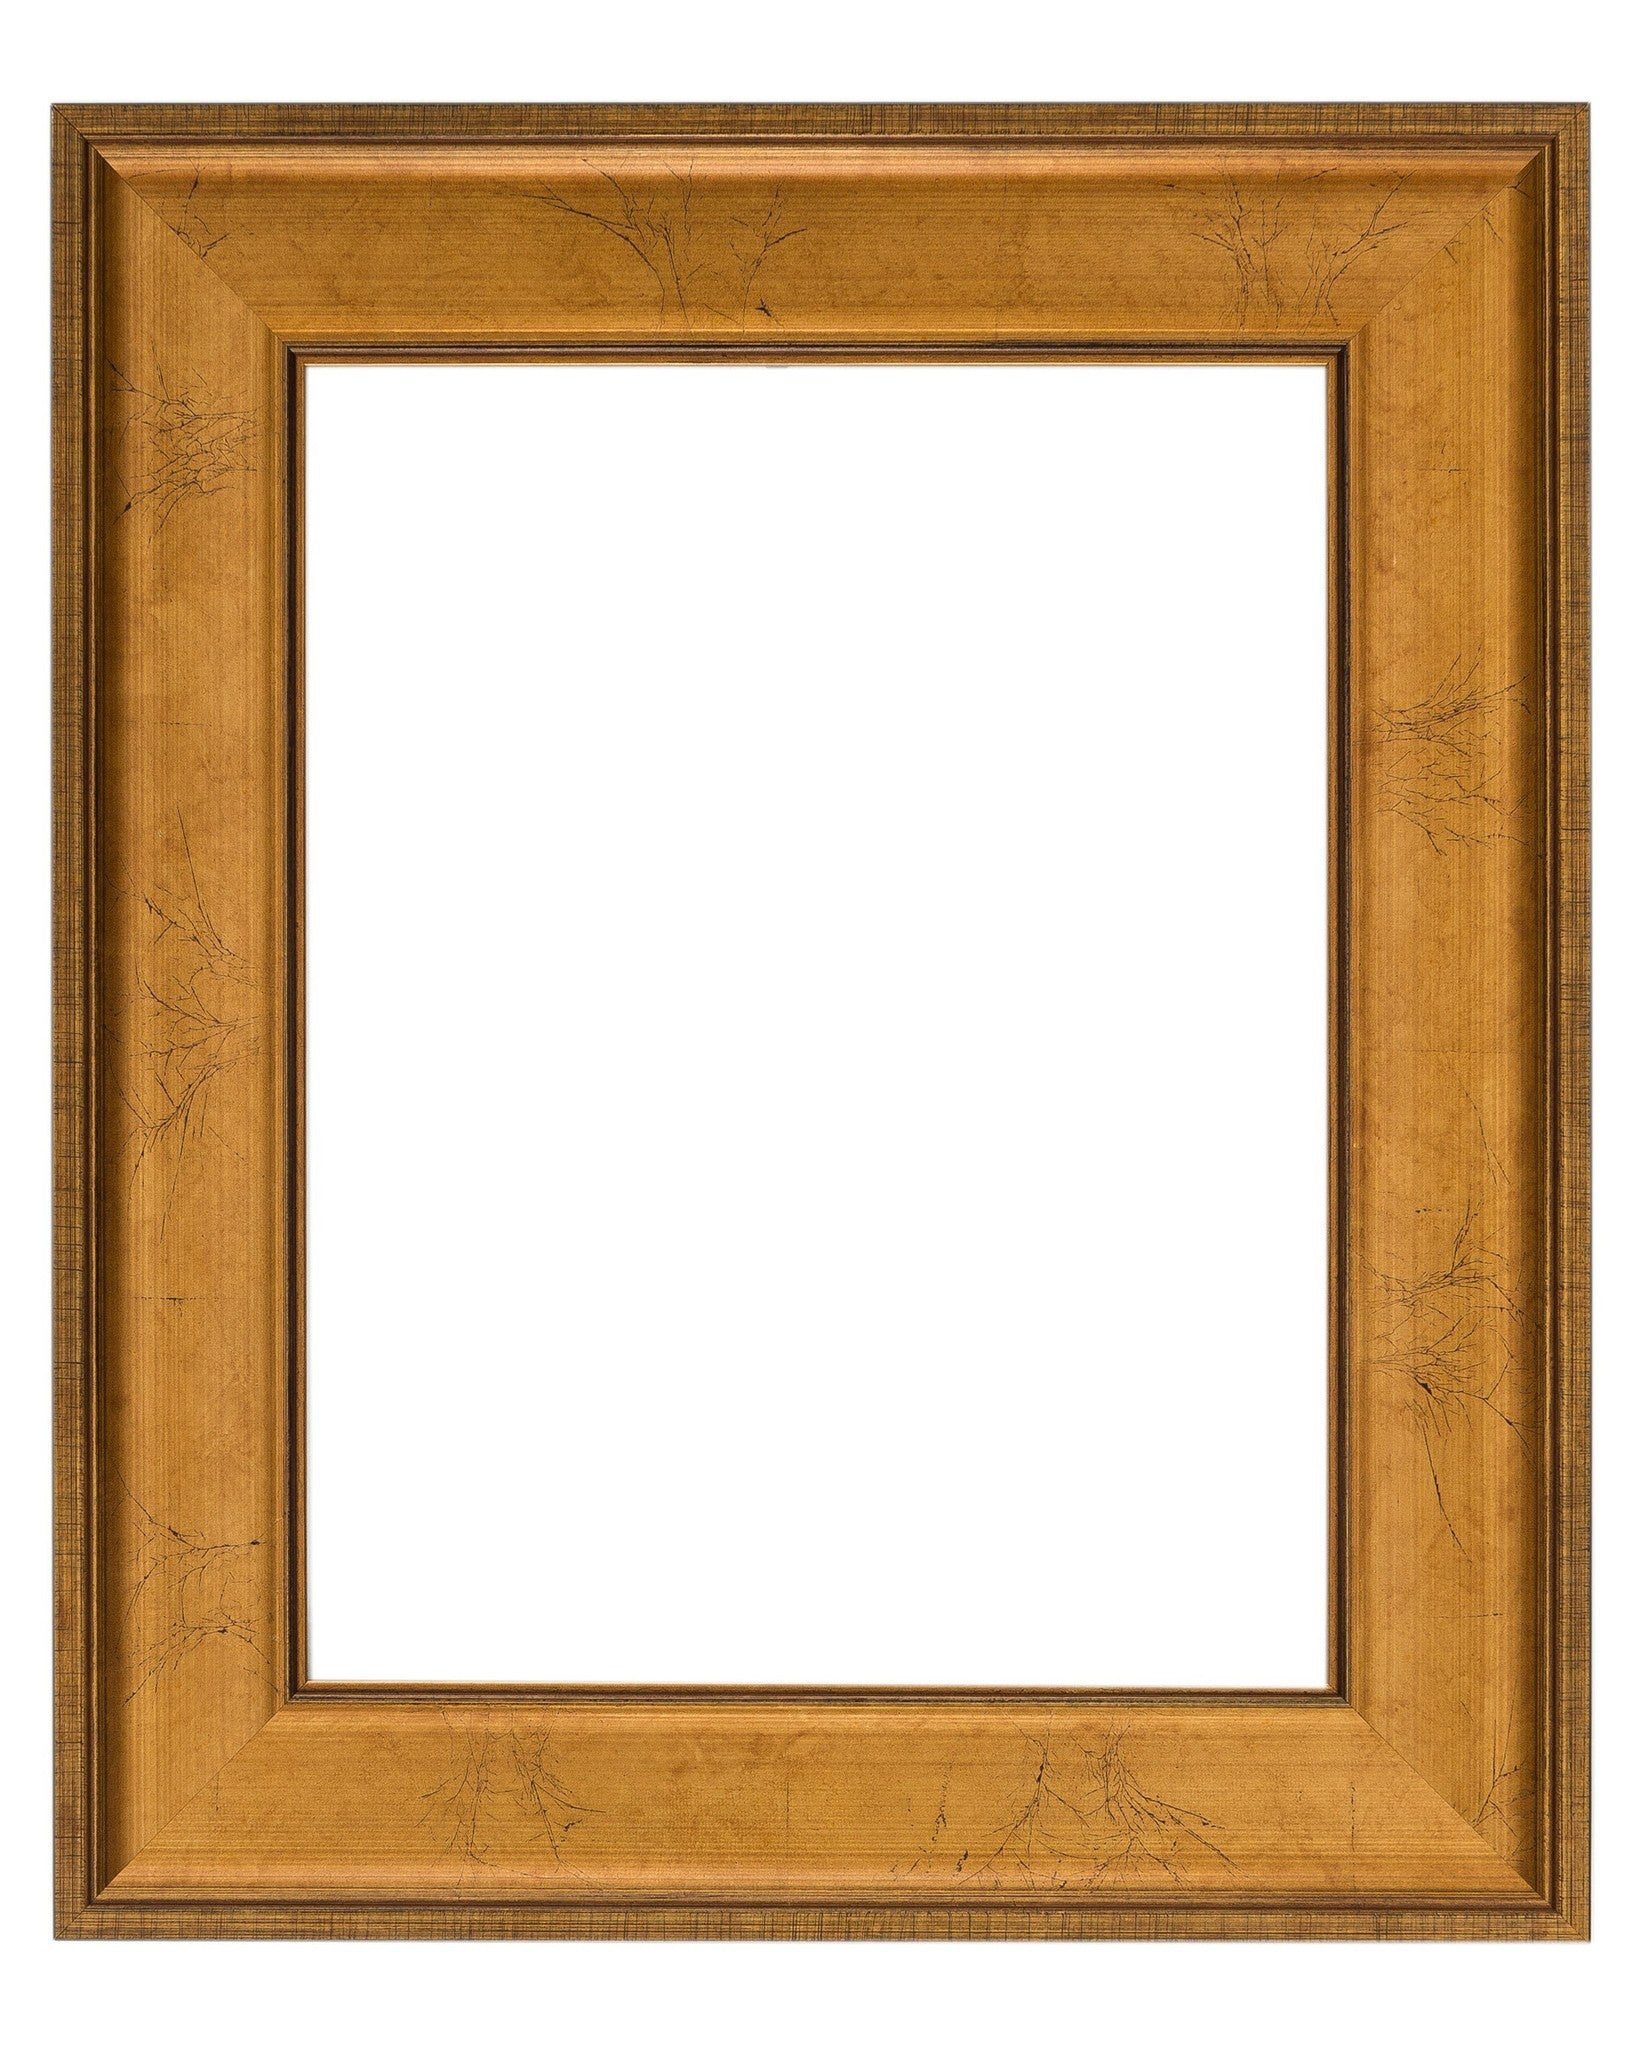 Crackled Gold Leaf Frame - Wholesale Frame Company